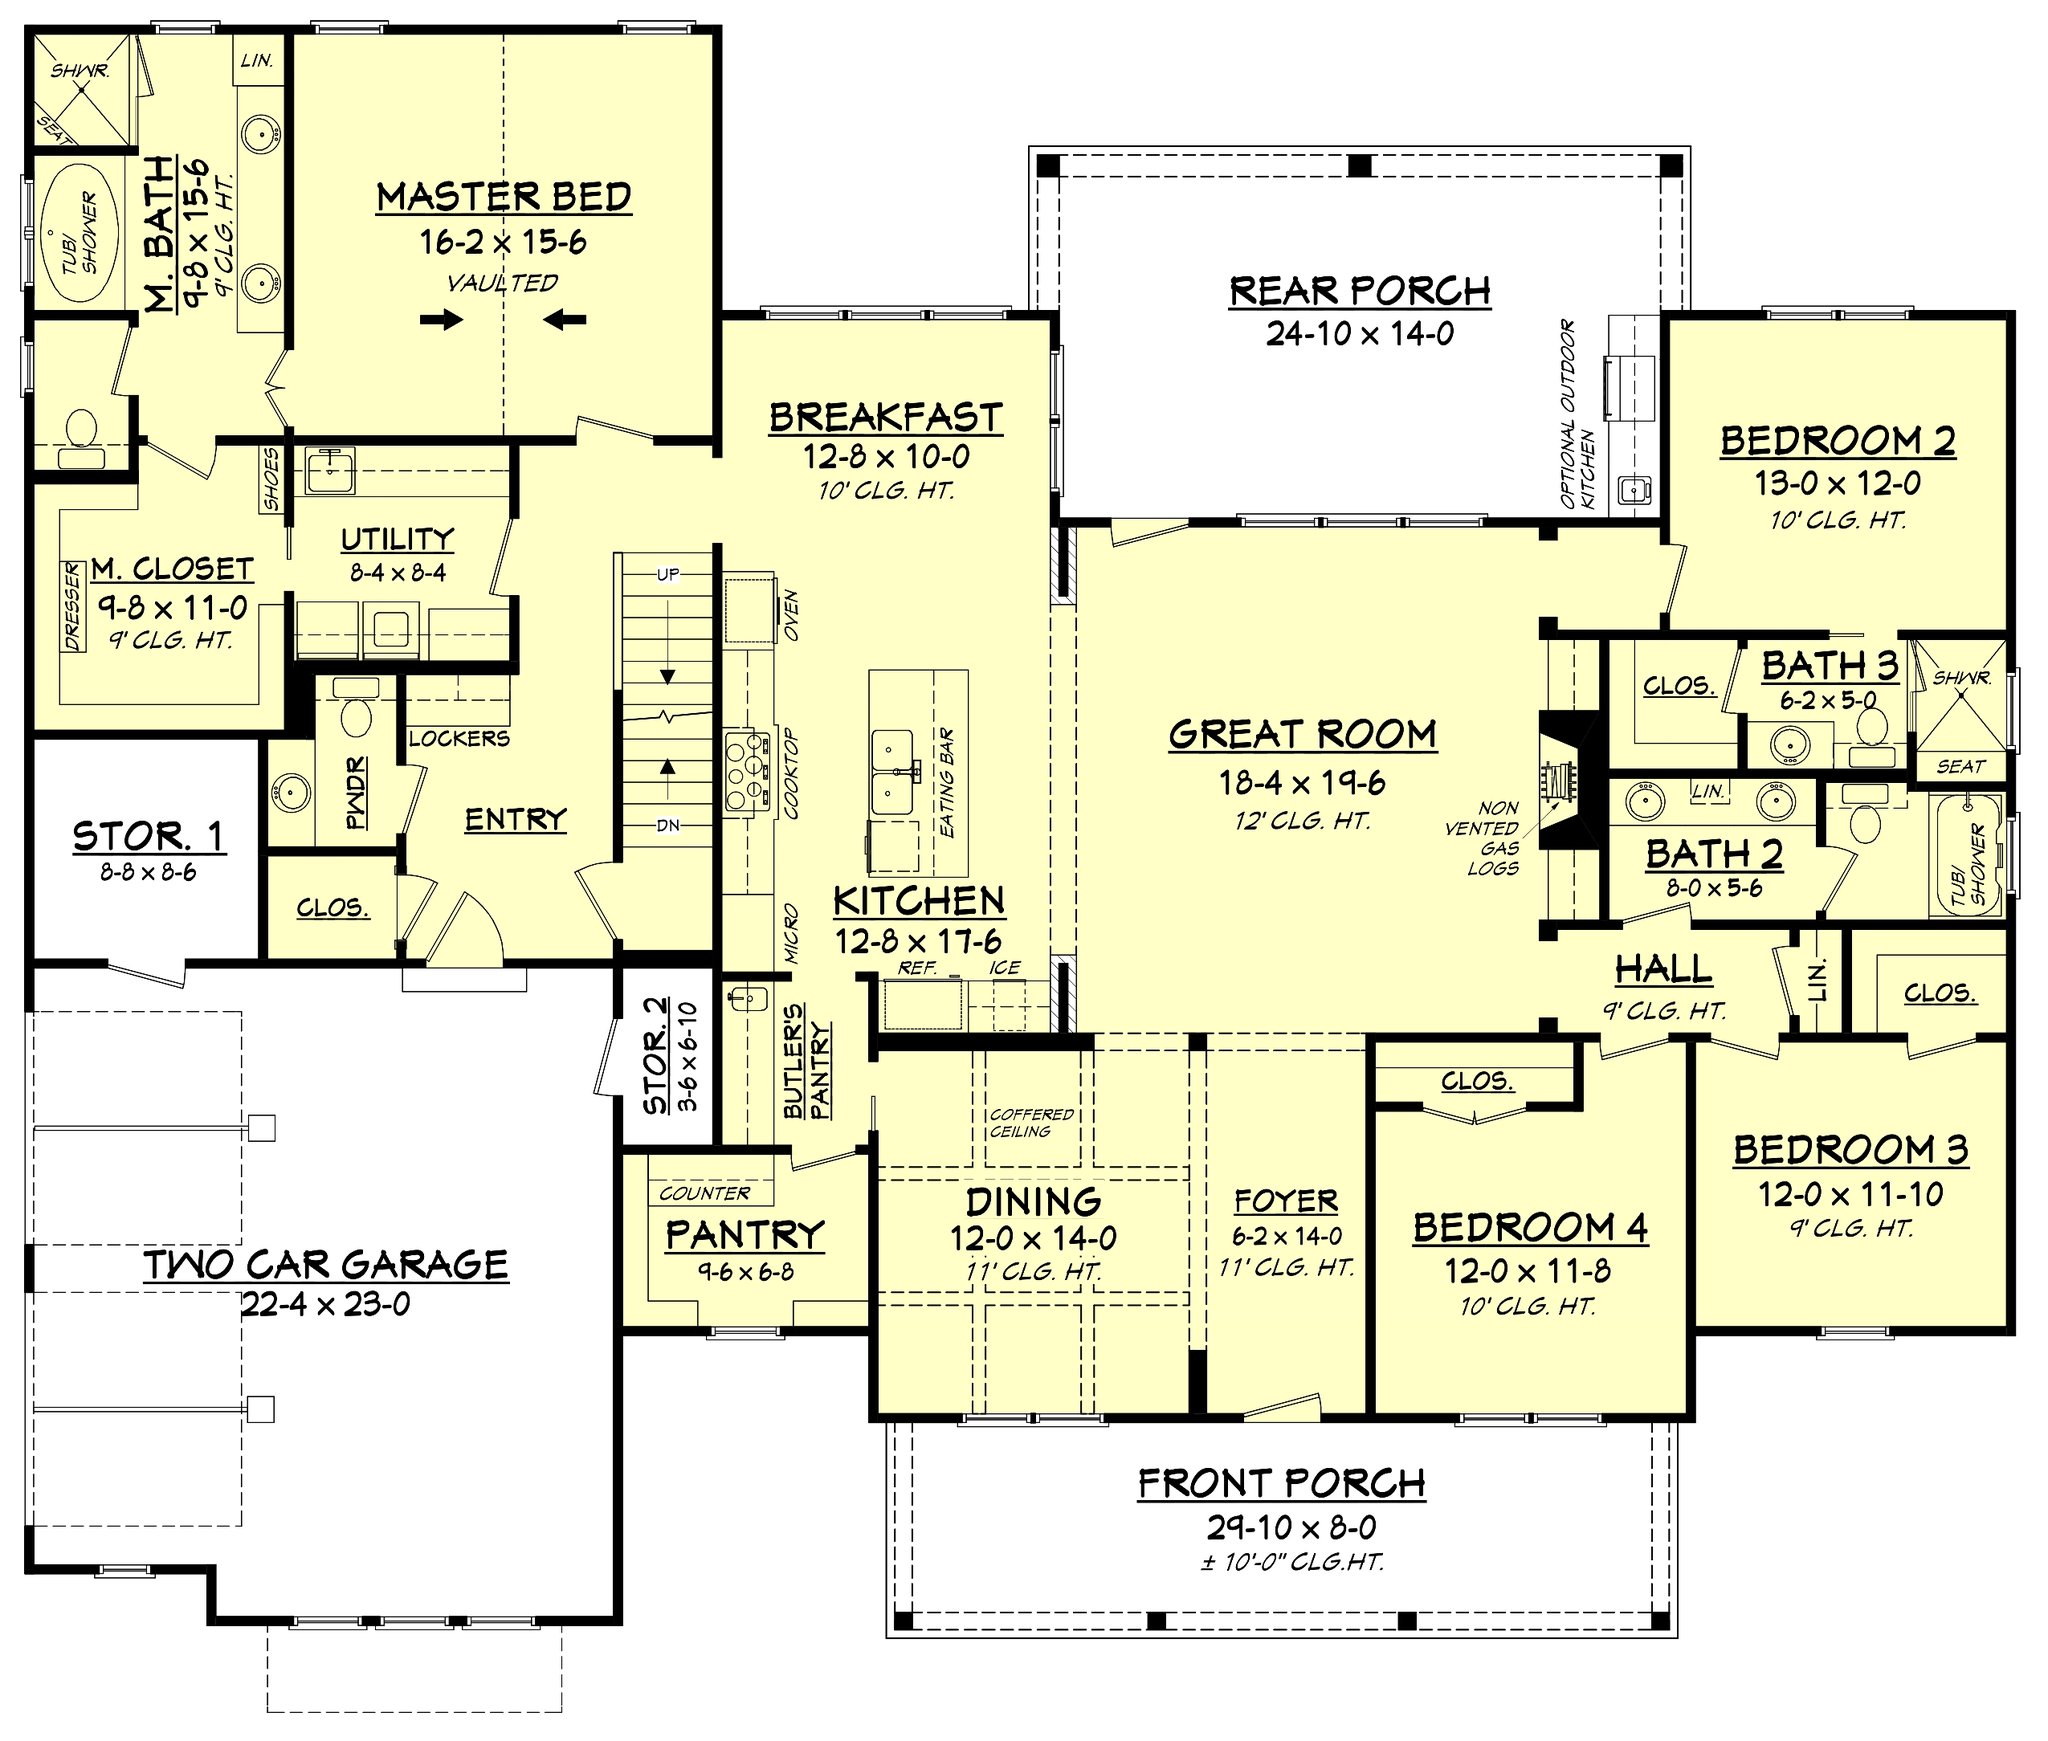 4 Bedroom House Layout: Transitional Country Farmhouse Plan